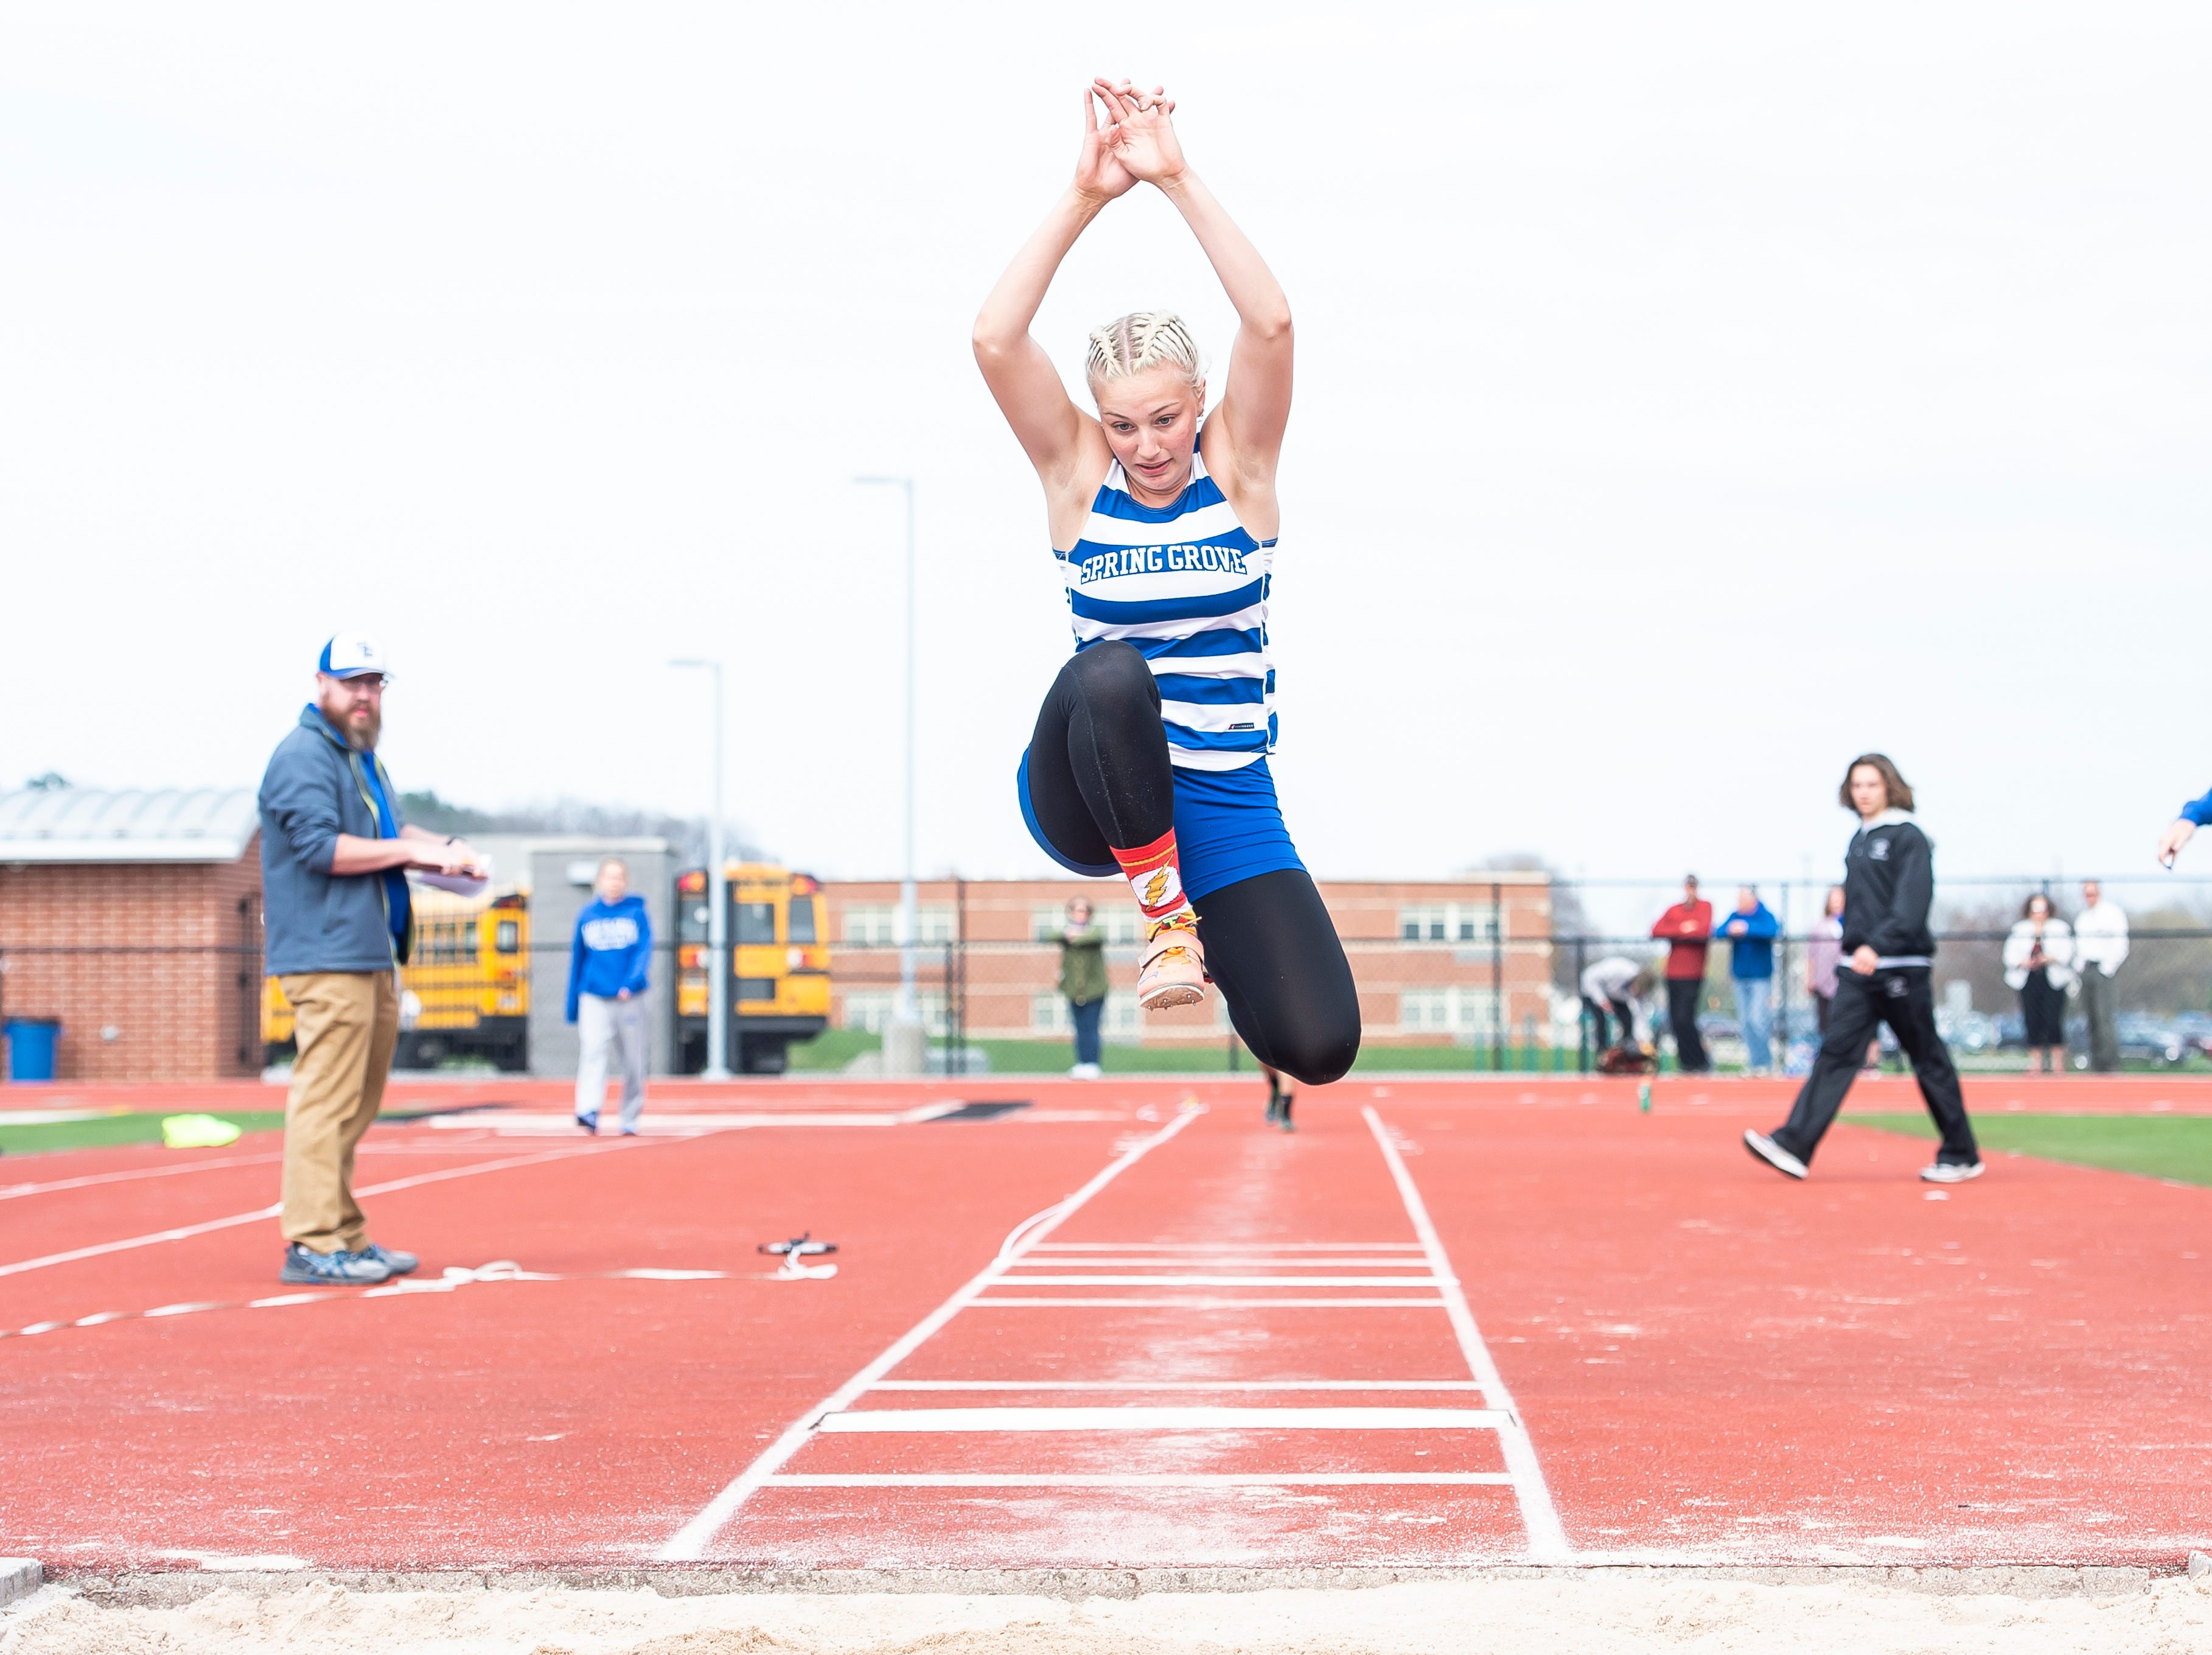 Spring Grove's Angel Rohrbaugh competes in the triple jump during a track and field meet against South Western on Thursday, April 11, 2019.